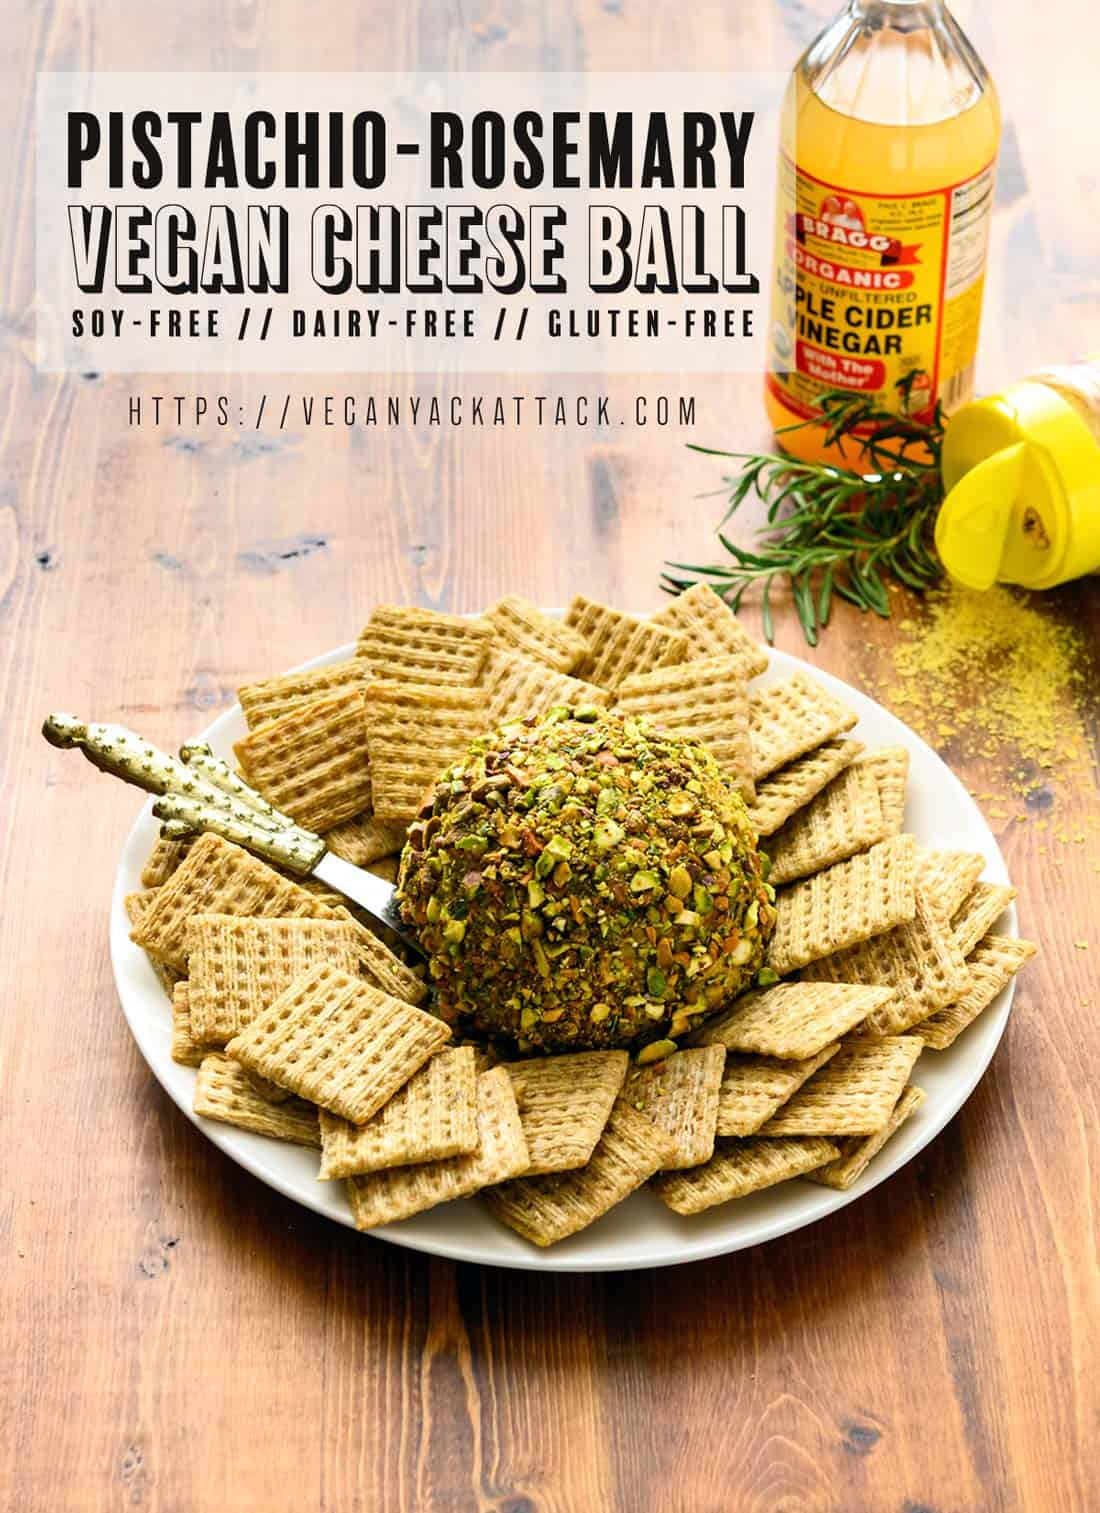 Picture of pistachio-rosemary cheese ball on a plate surrounded by crackers